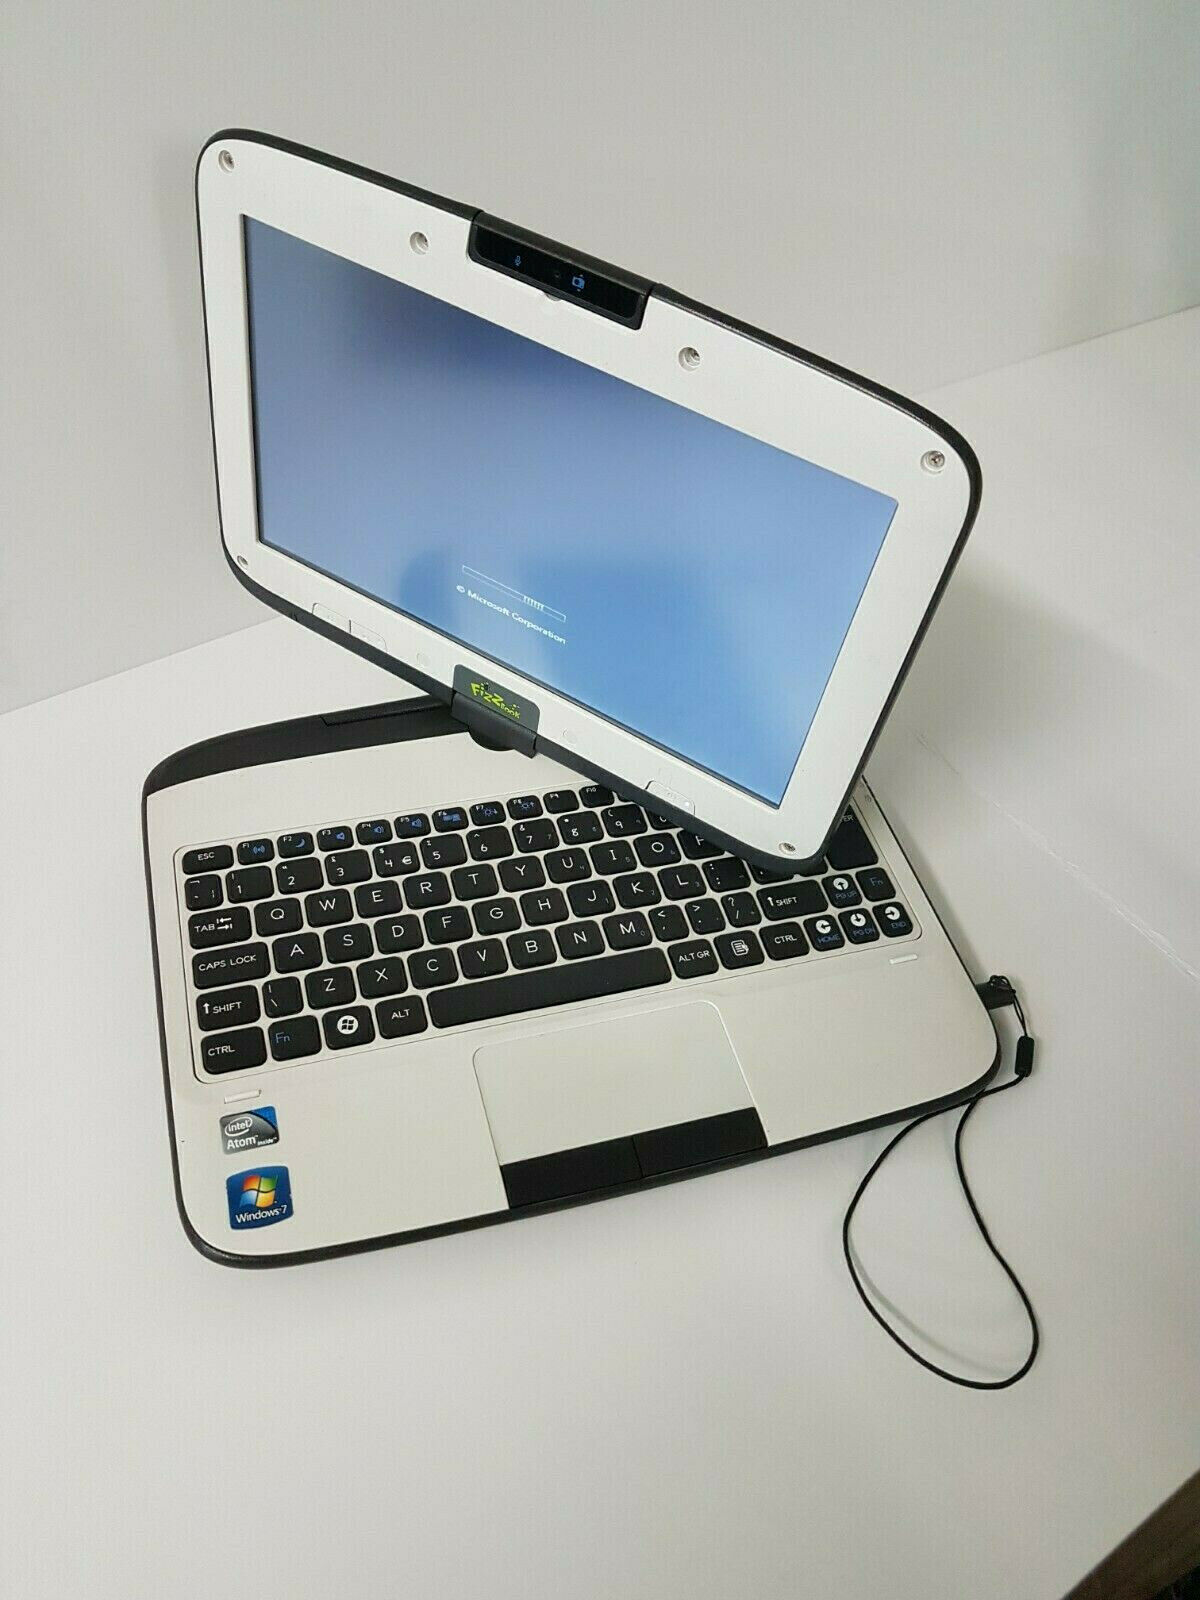 Laptop Windows - Windows 7 Laptop Fizzbook SPIN&TOUCH Screen Notebook 1,60GHz,2GB 320GB HDD!